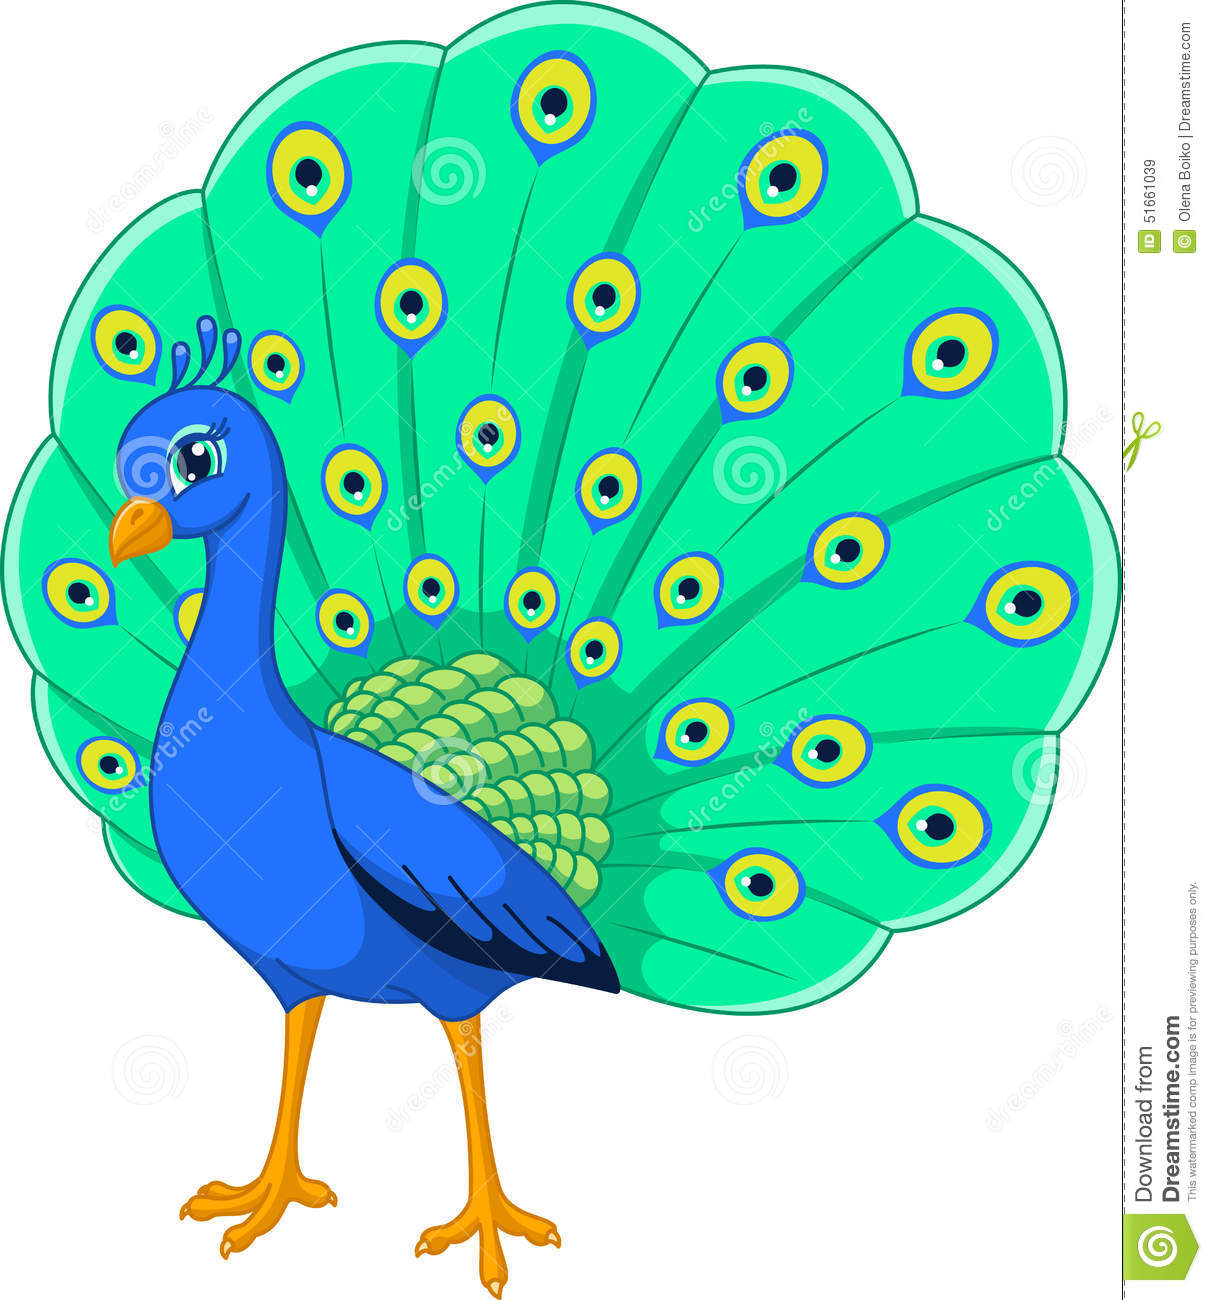 Peacock Stock Vector - Image: 51661039